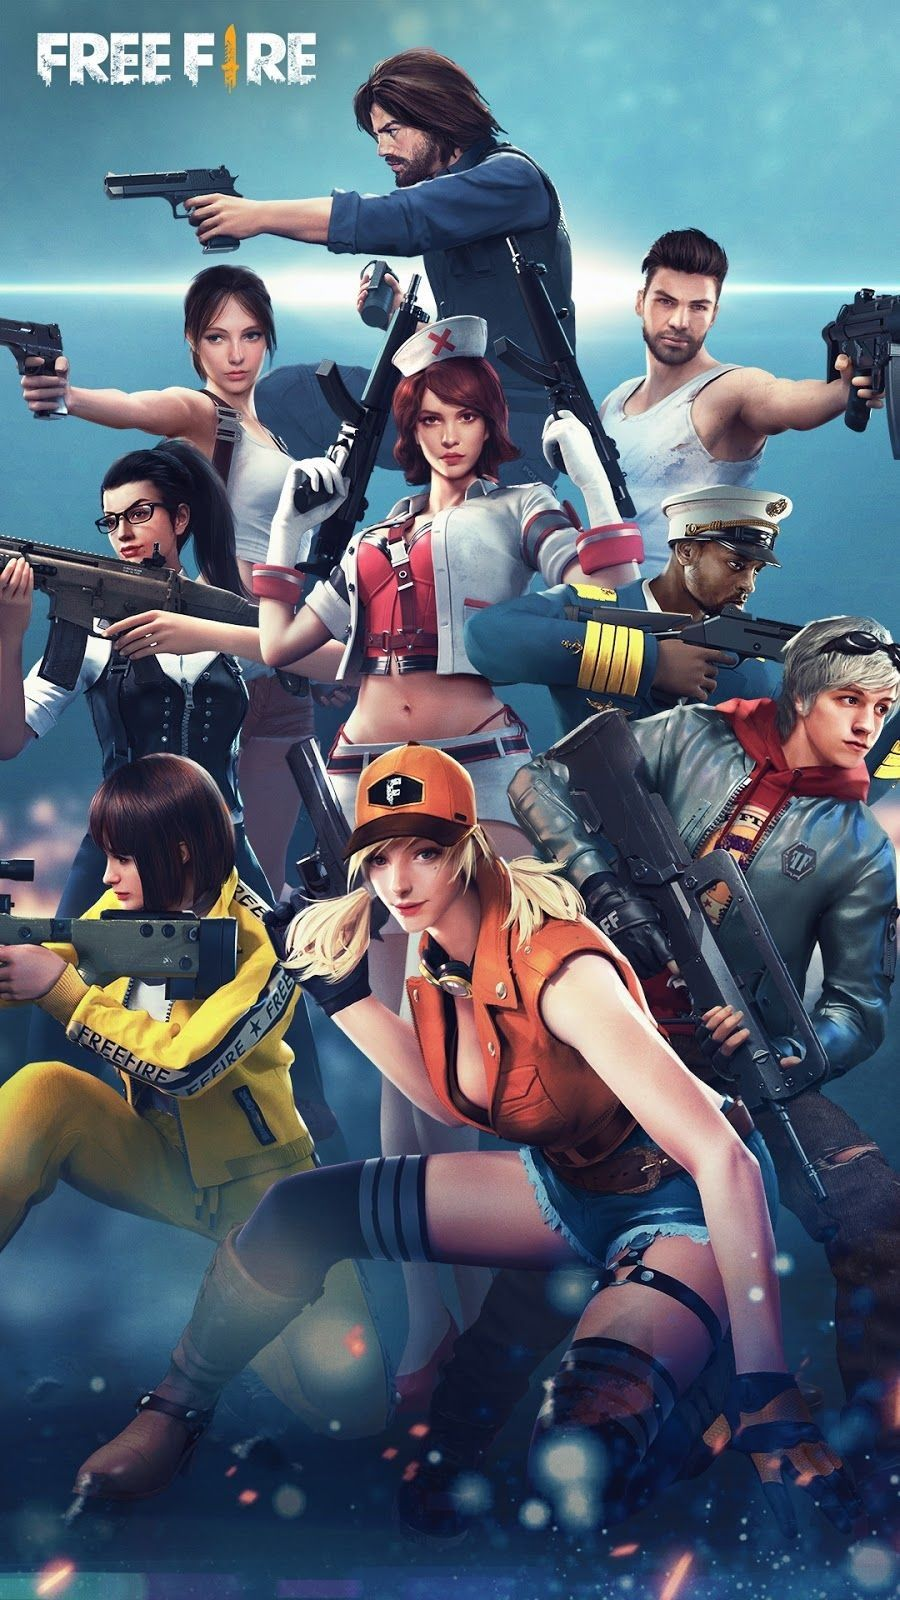 Wallpaper Free Fire Hd 2020